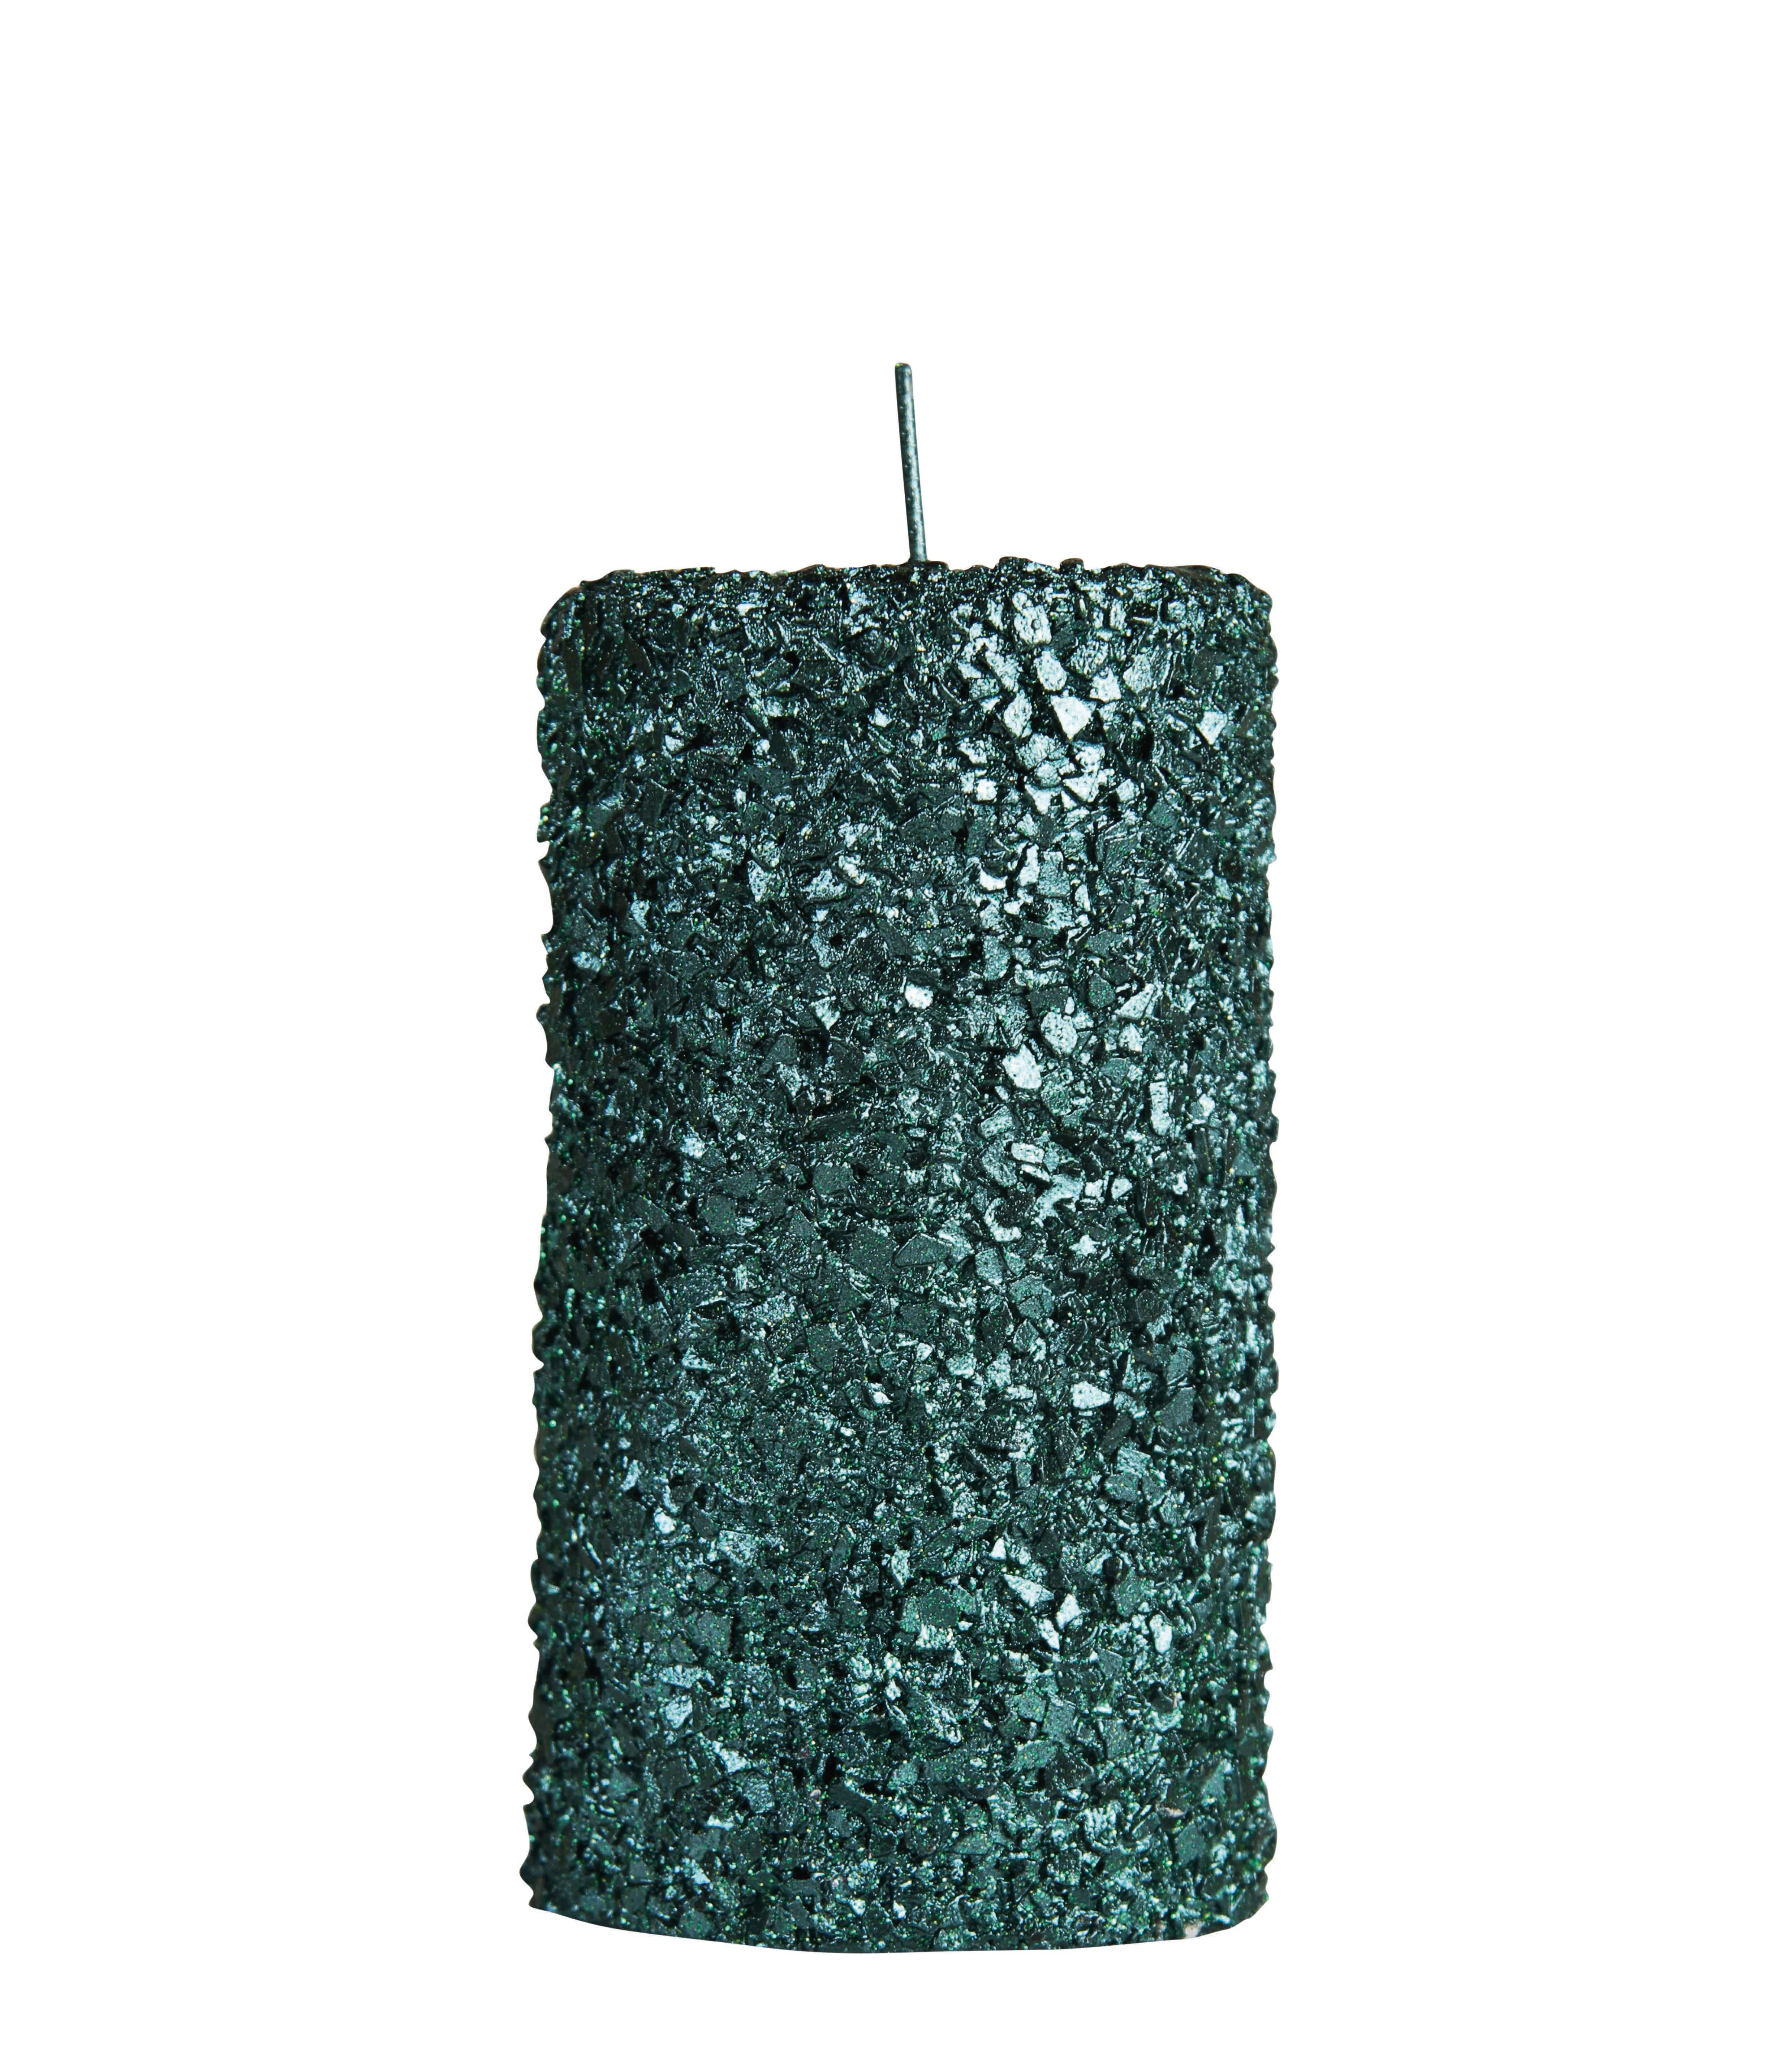 Déco - Bougeoirs, photophores - Bougie Pillar / Medium - H 13 cm - & klevering - Medium / Vert pailleté - Cire